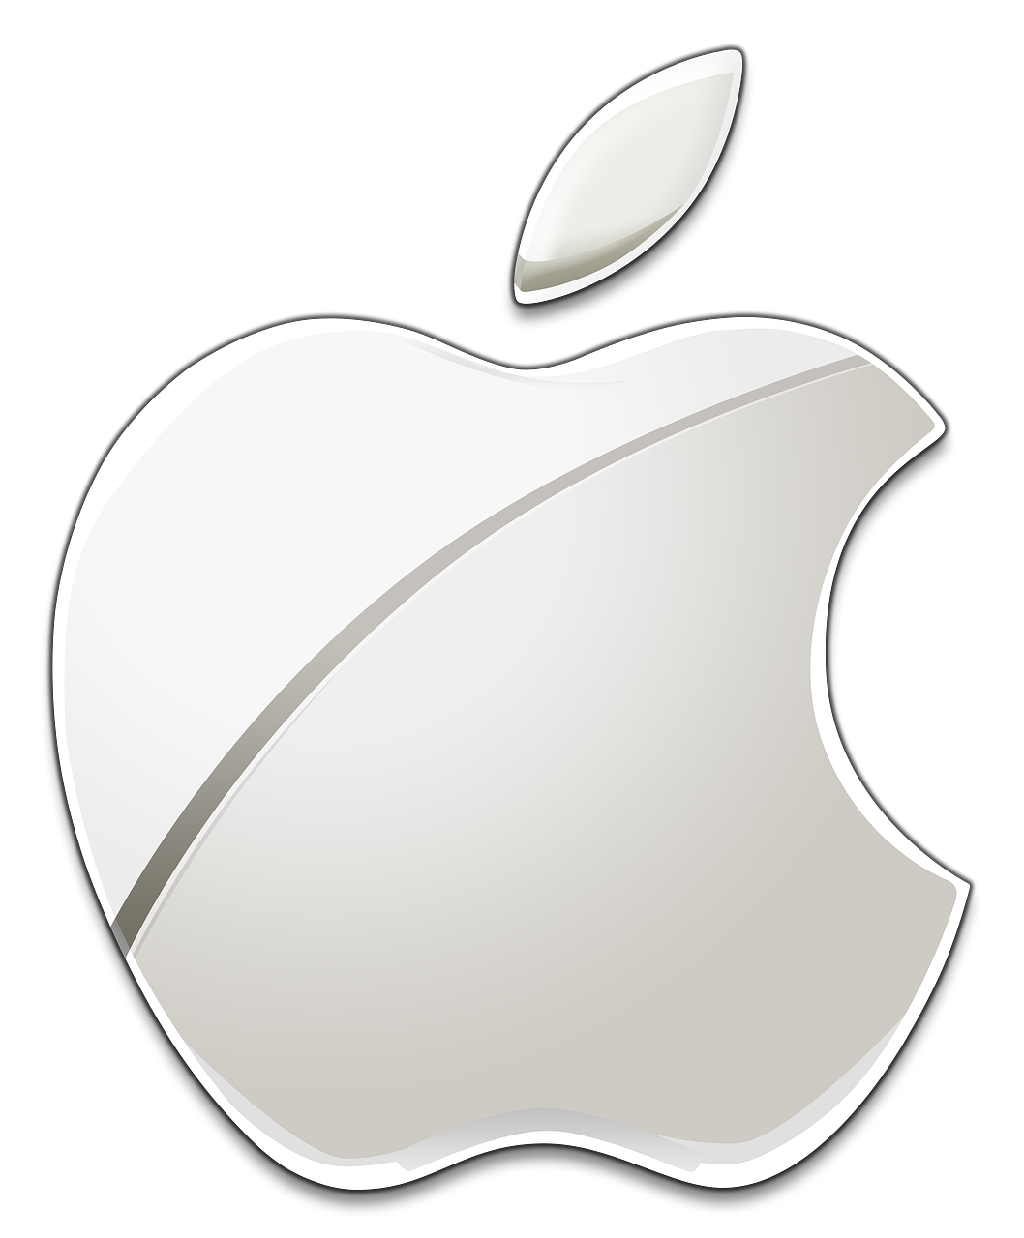 official apple logo 2015. apple-logo.png official apple logo 2015